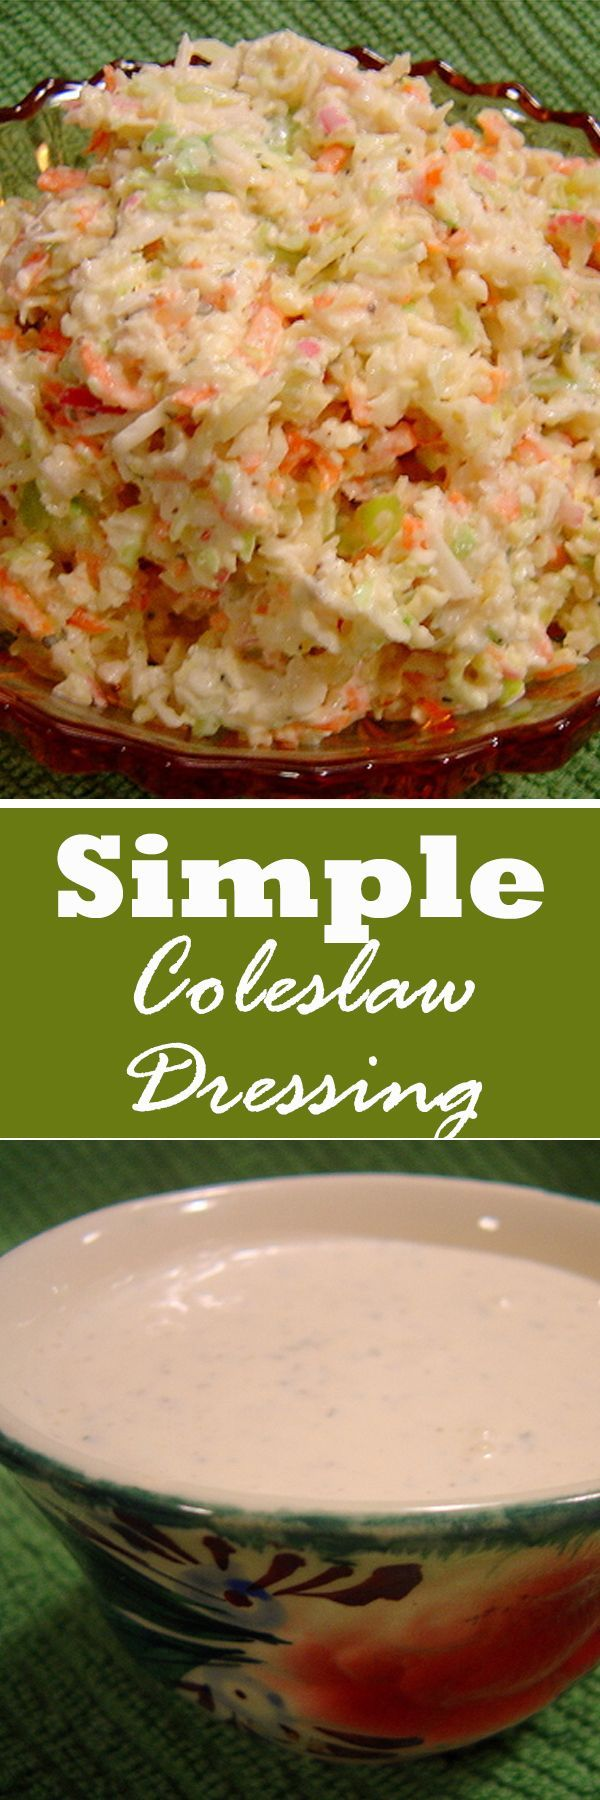 This simple coleslaw dressing is perfect for summer recipes.